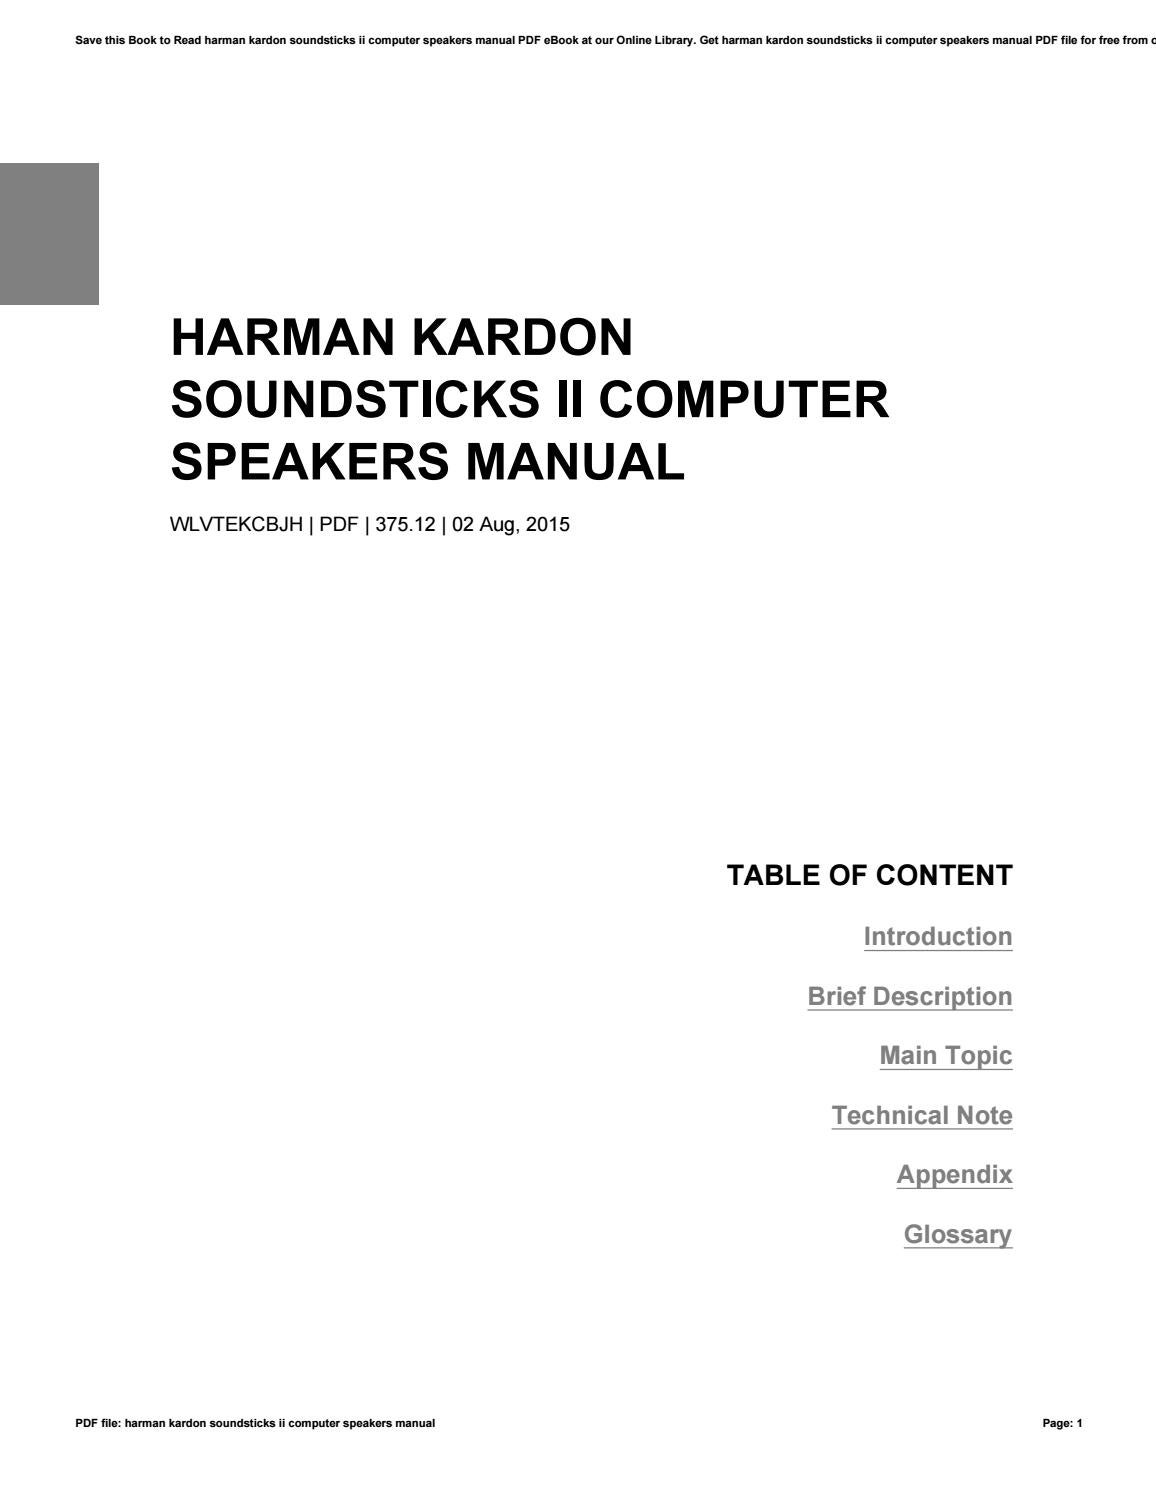 Harman kardon soundsticks ii computer speakers manual by